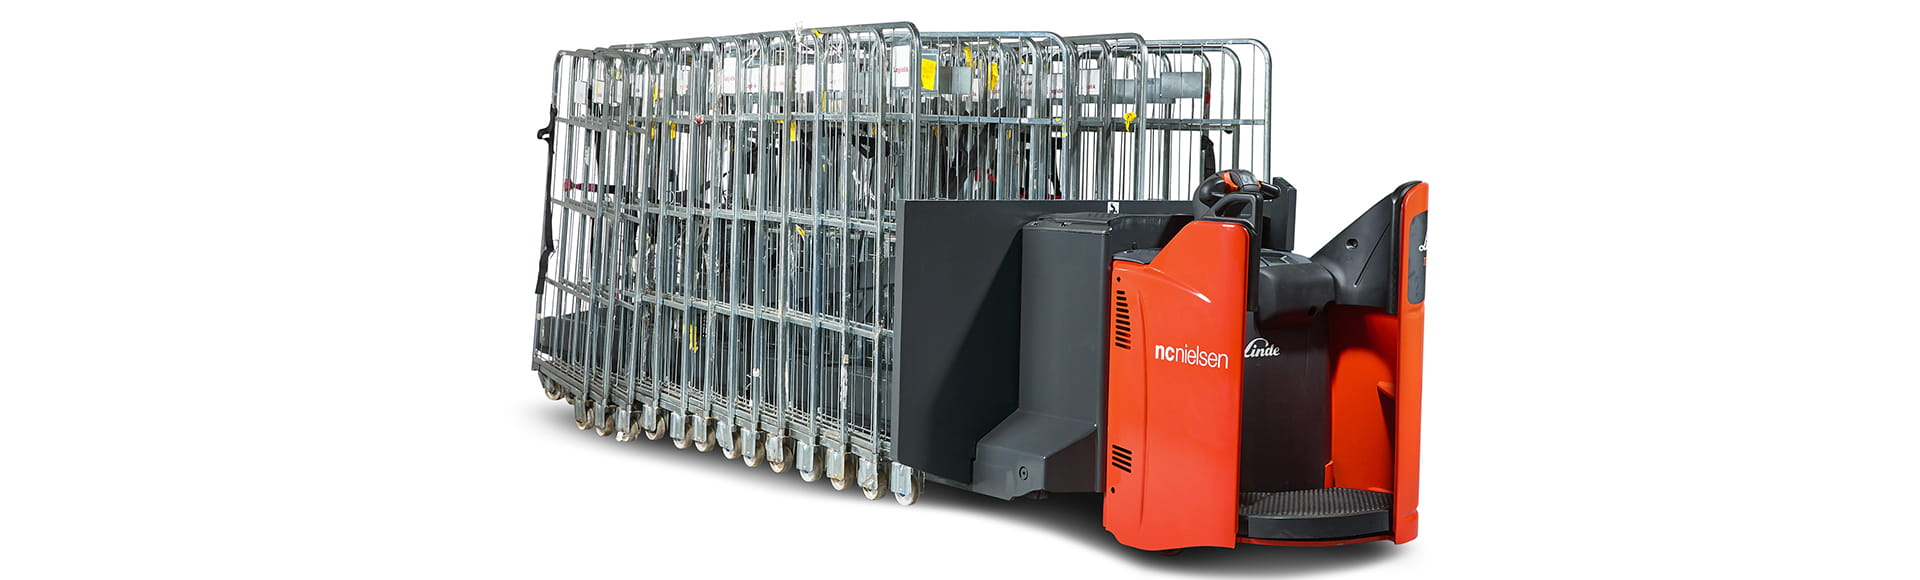 N.C. NIELSEN'S SPECIALISED MACHINE MOVES Trolly Carts IN BUNDLES